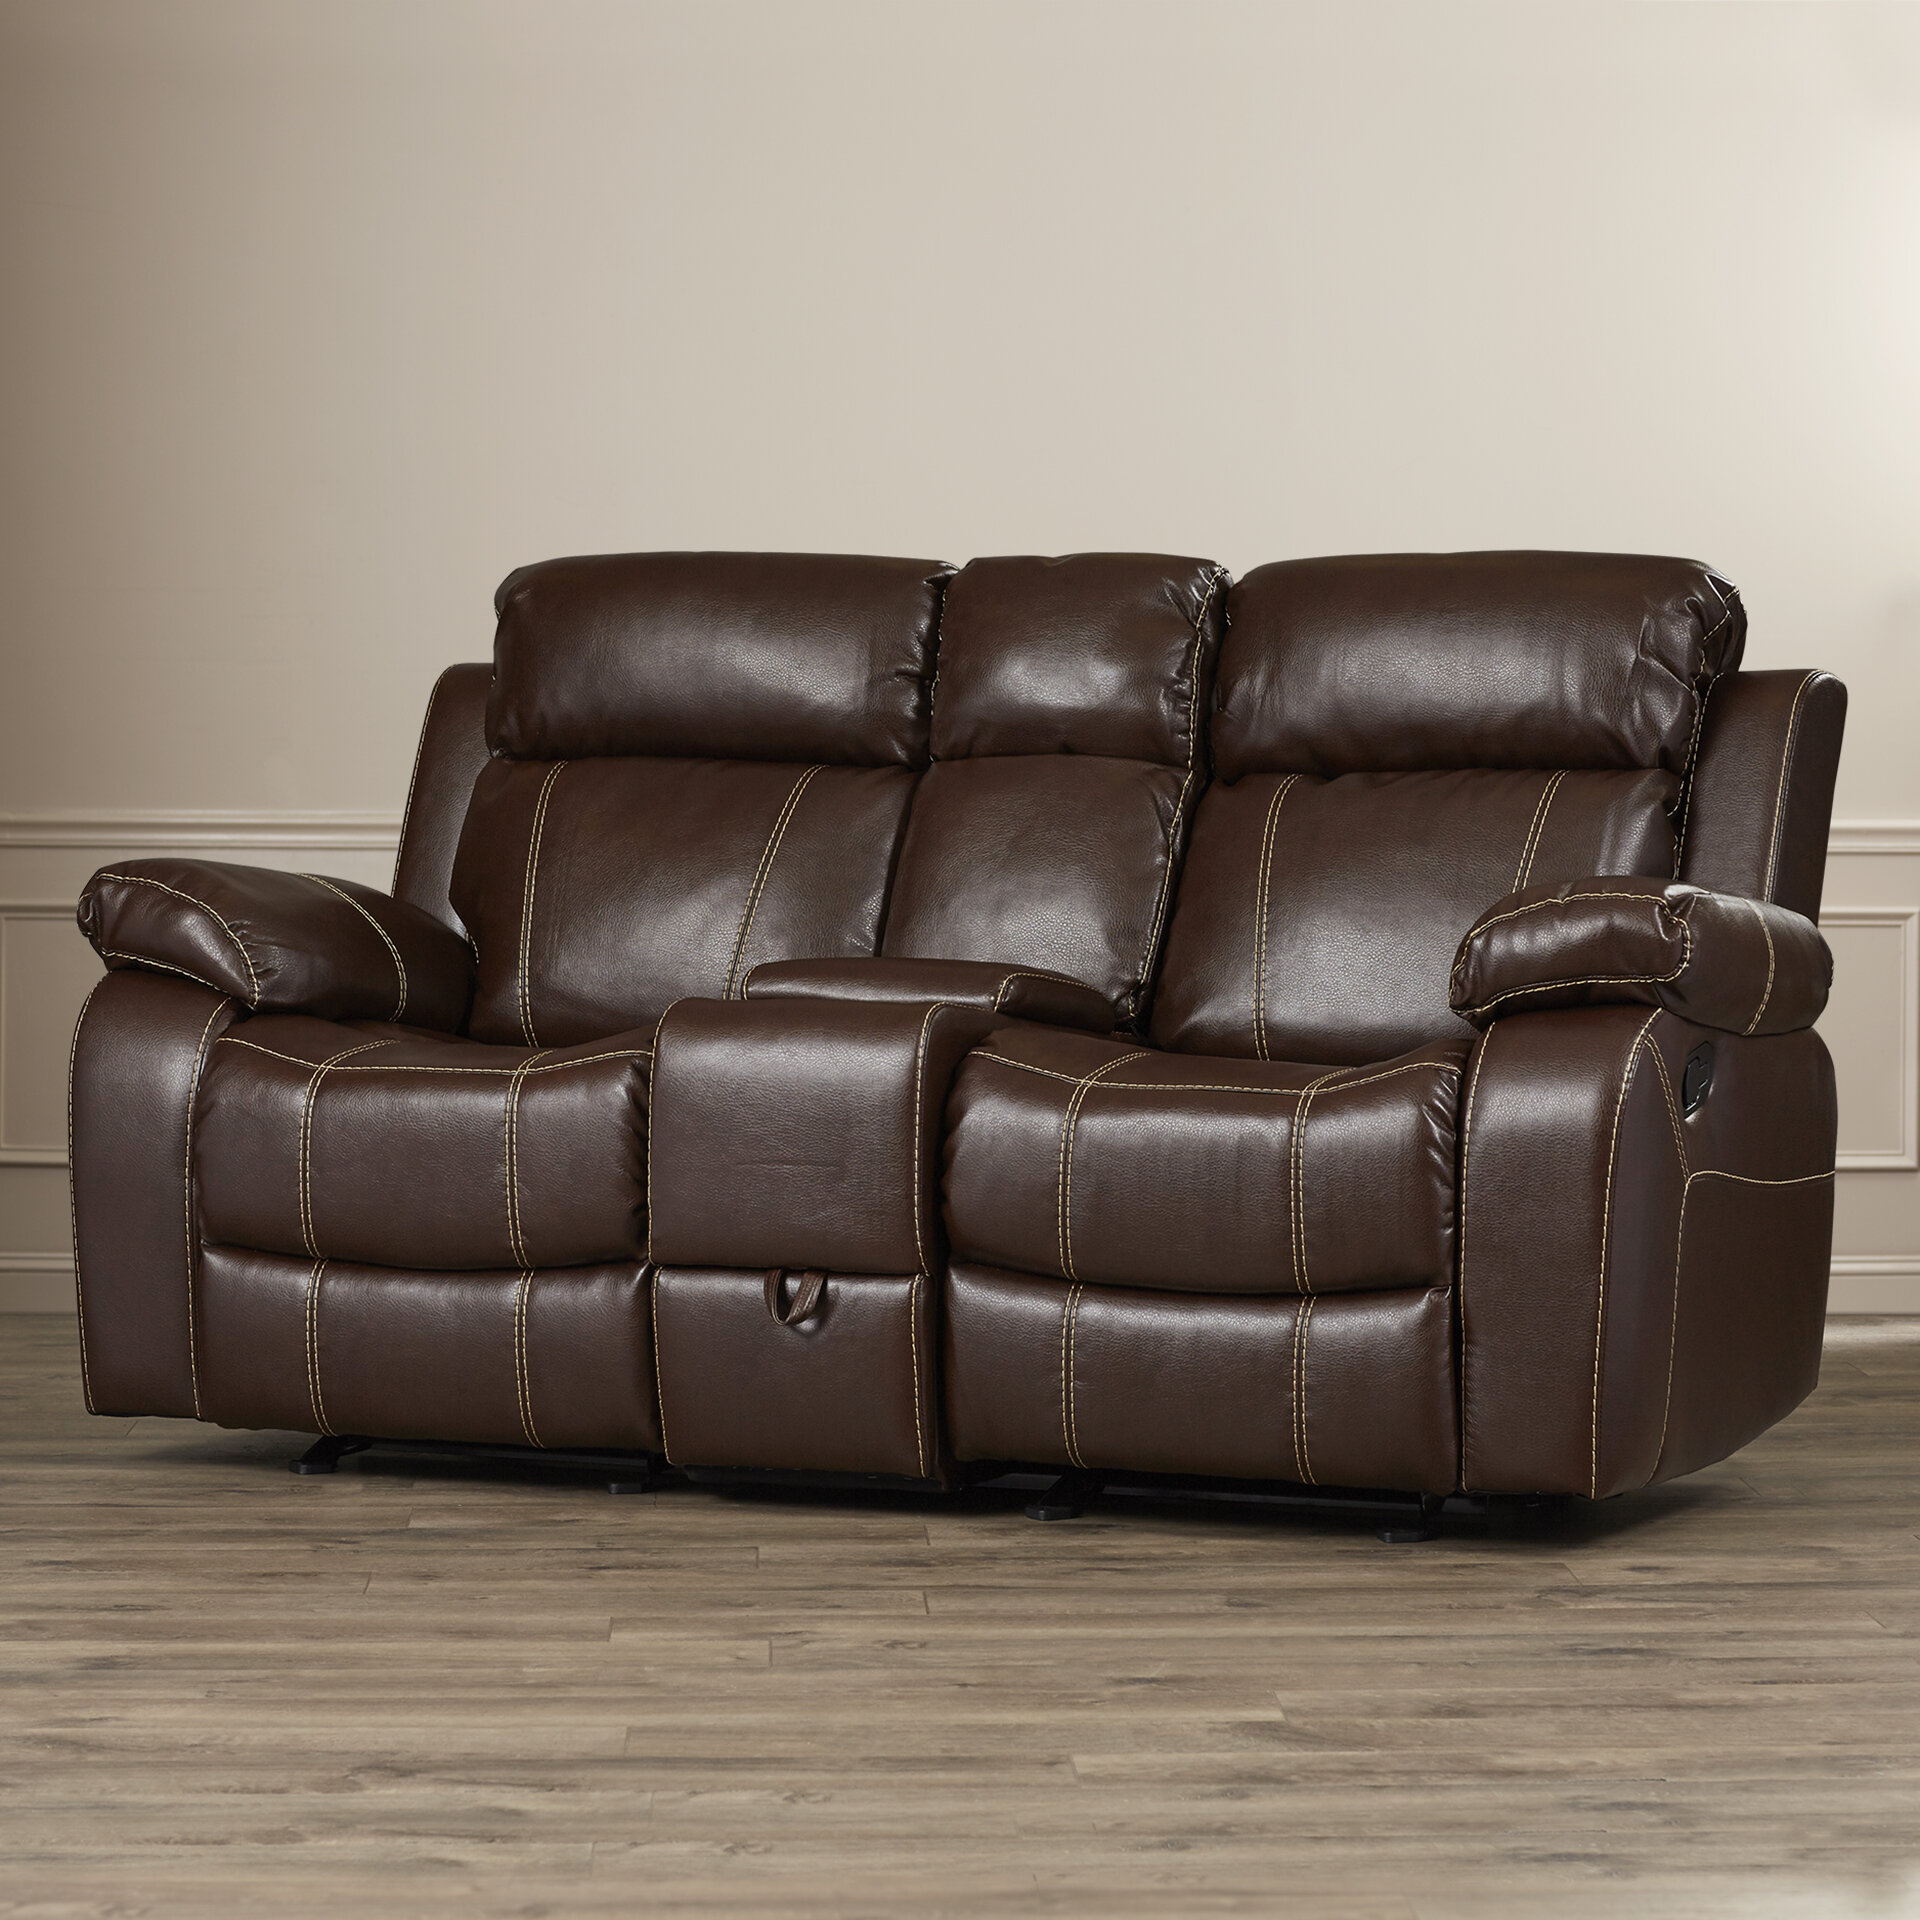 with reclining double sofa barrettsville seat durablend wedge recliner loveat clsd chocolate console